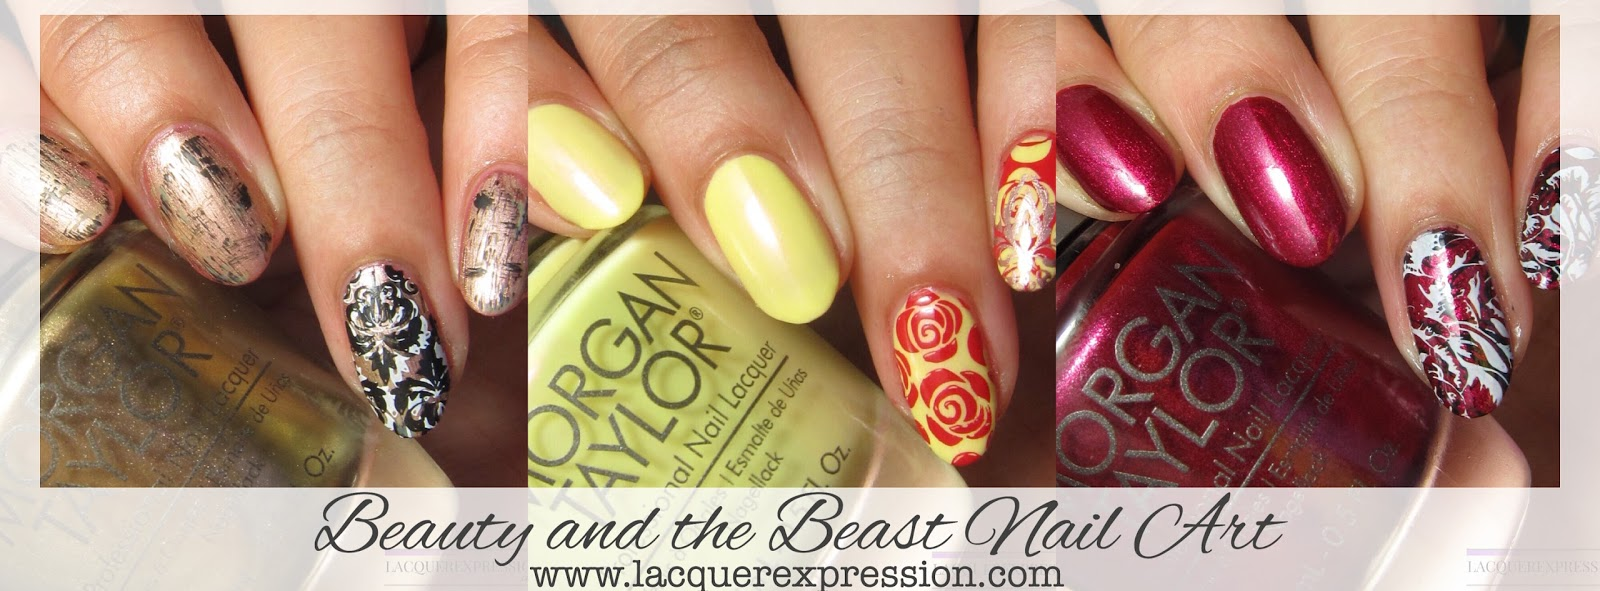 Nail Art - Stamped Designs Inspired by Beauty and the Beast ...